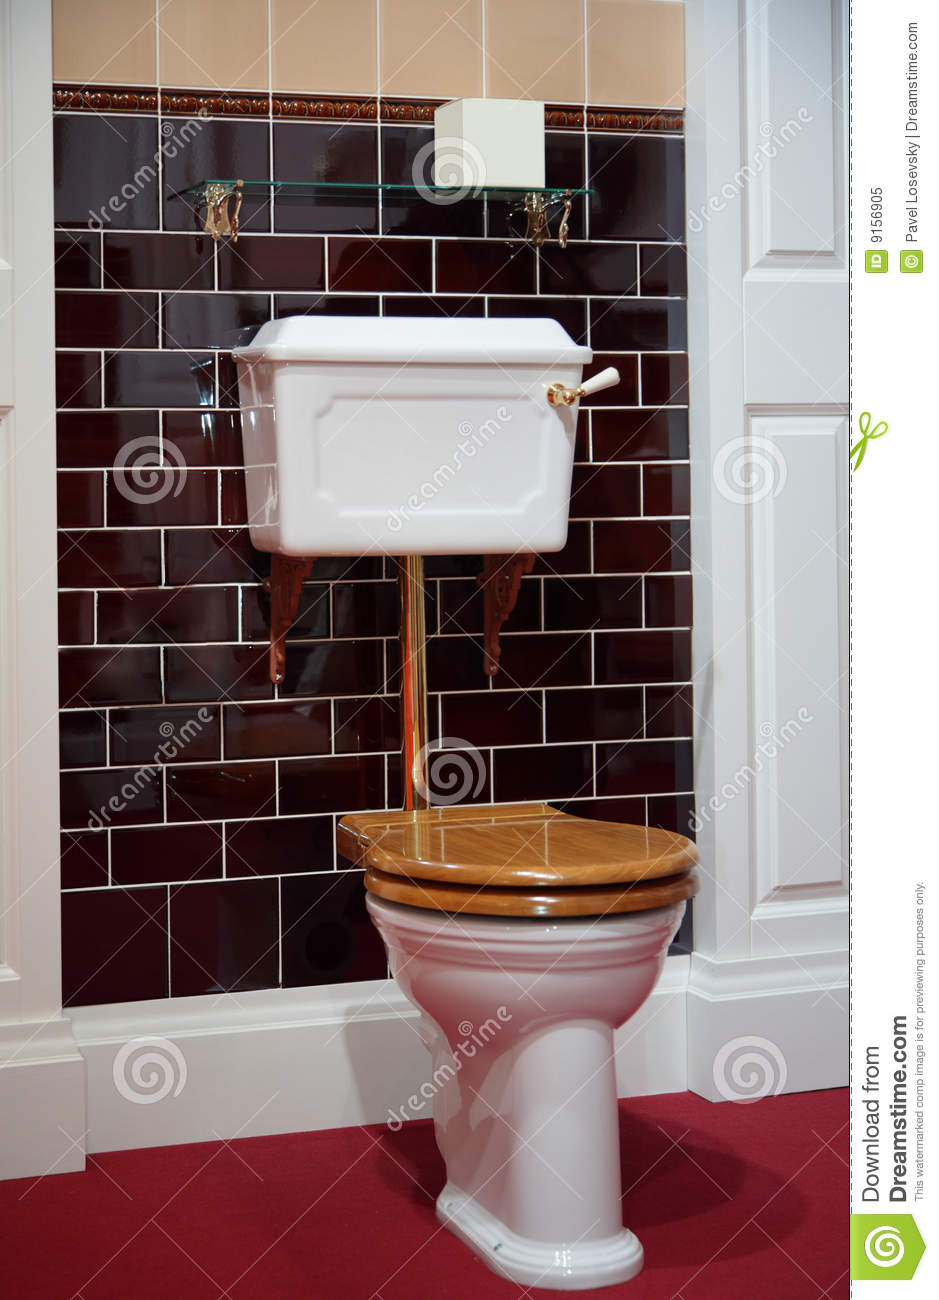 Toilet In Old Fashioned Style Royalty Free Stock Photo